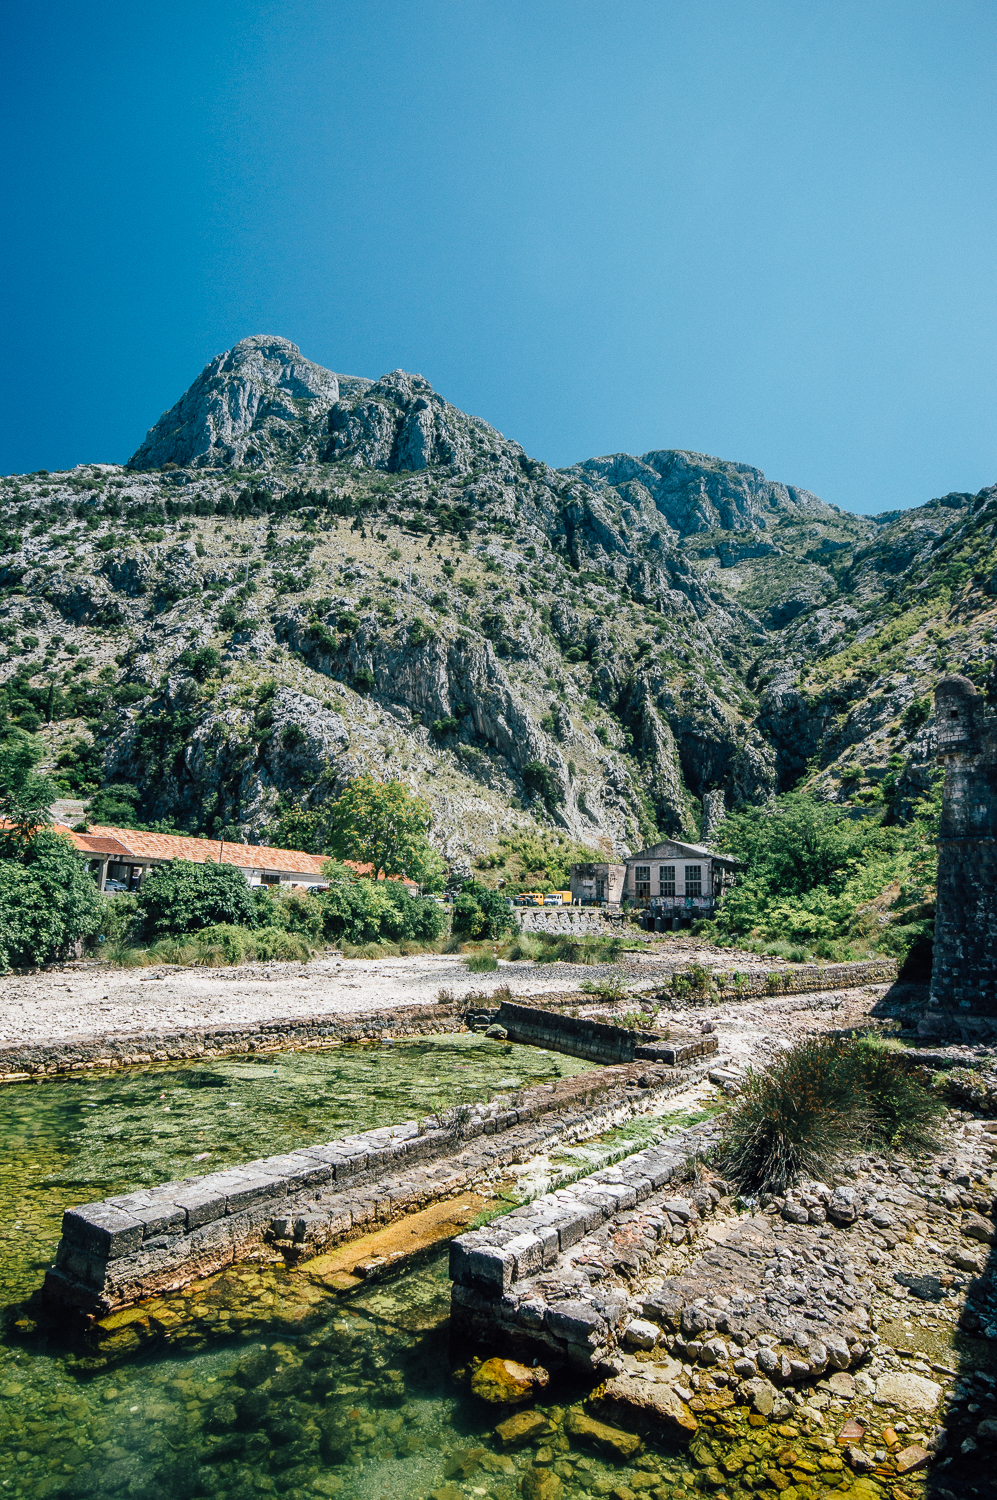 The exterior of the Old Town fortress walls  and magnificent mountains